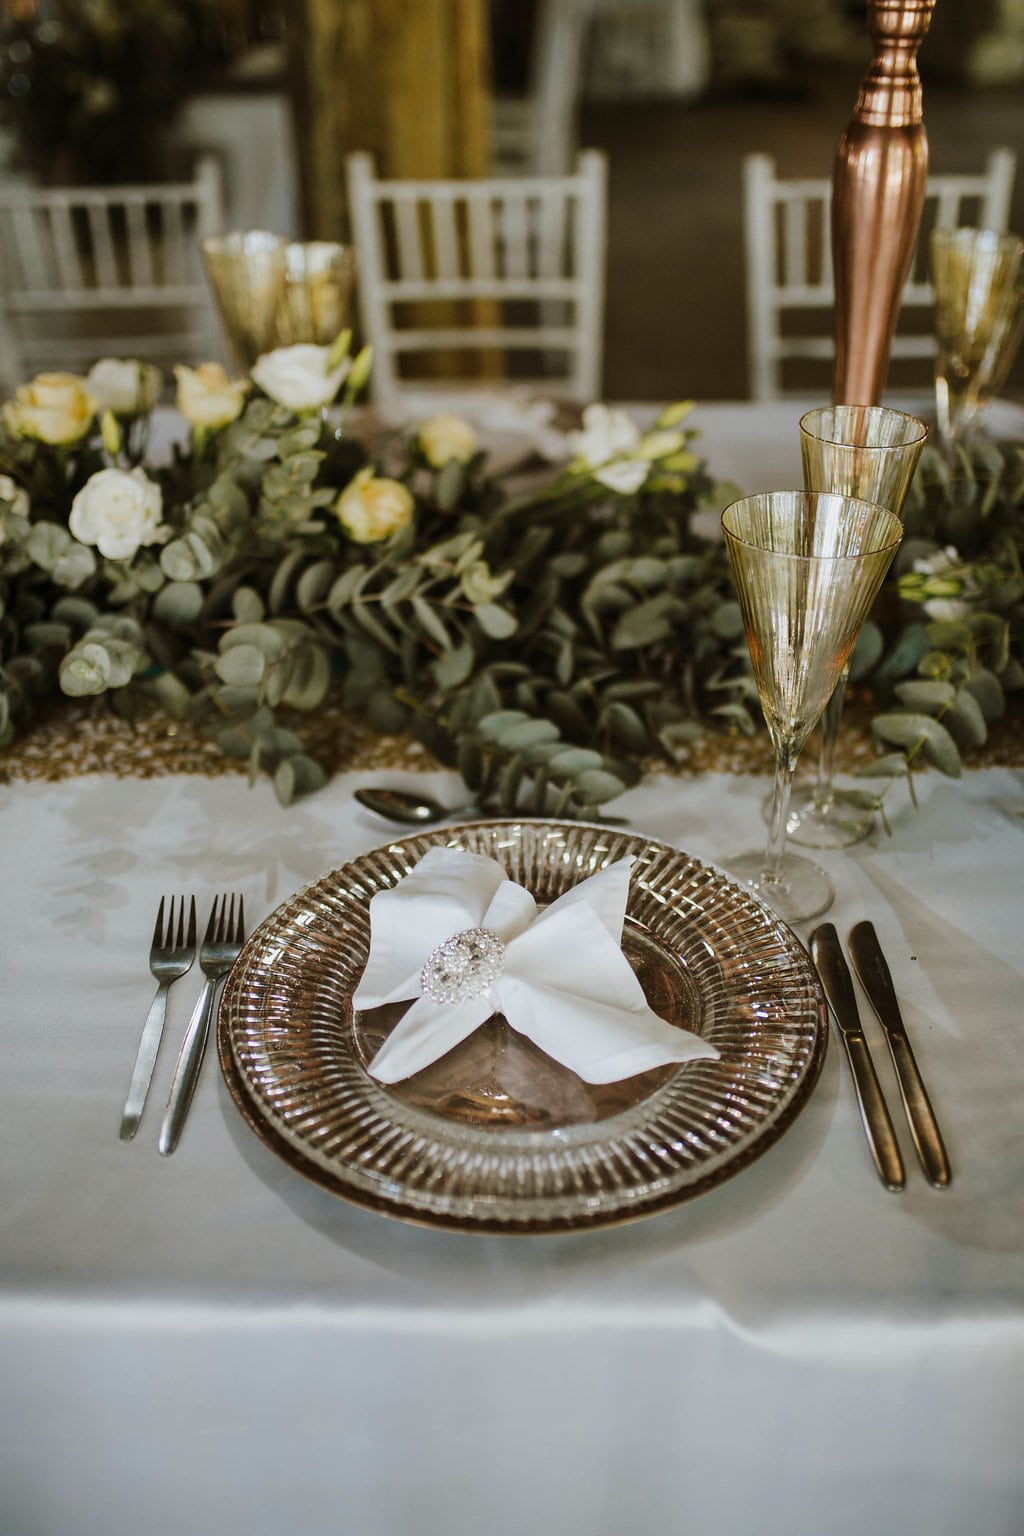 Glam Rustic Okace Setting with Sequin Linens, Greenery Runner & Mercury Glass | Image: Jessica J Photography